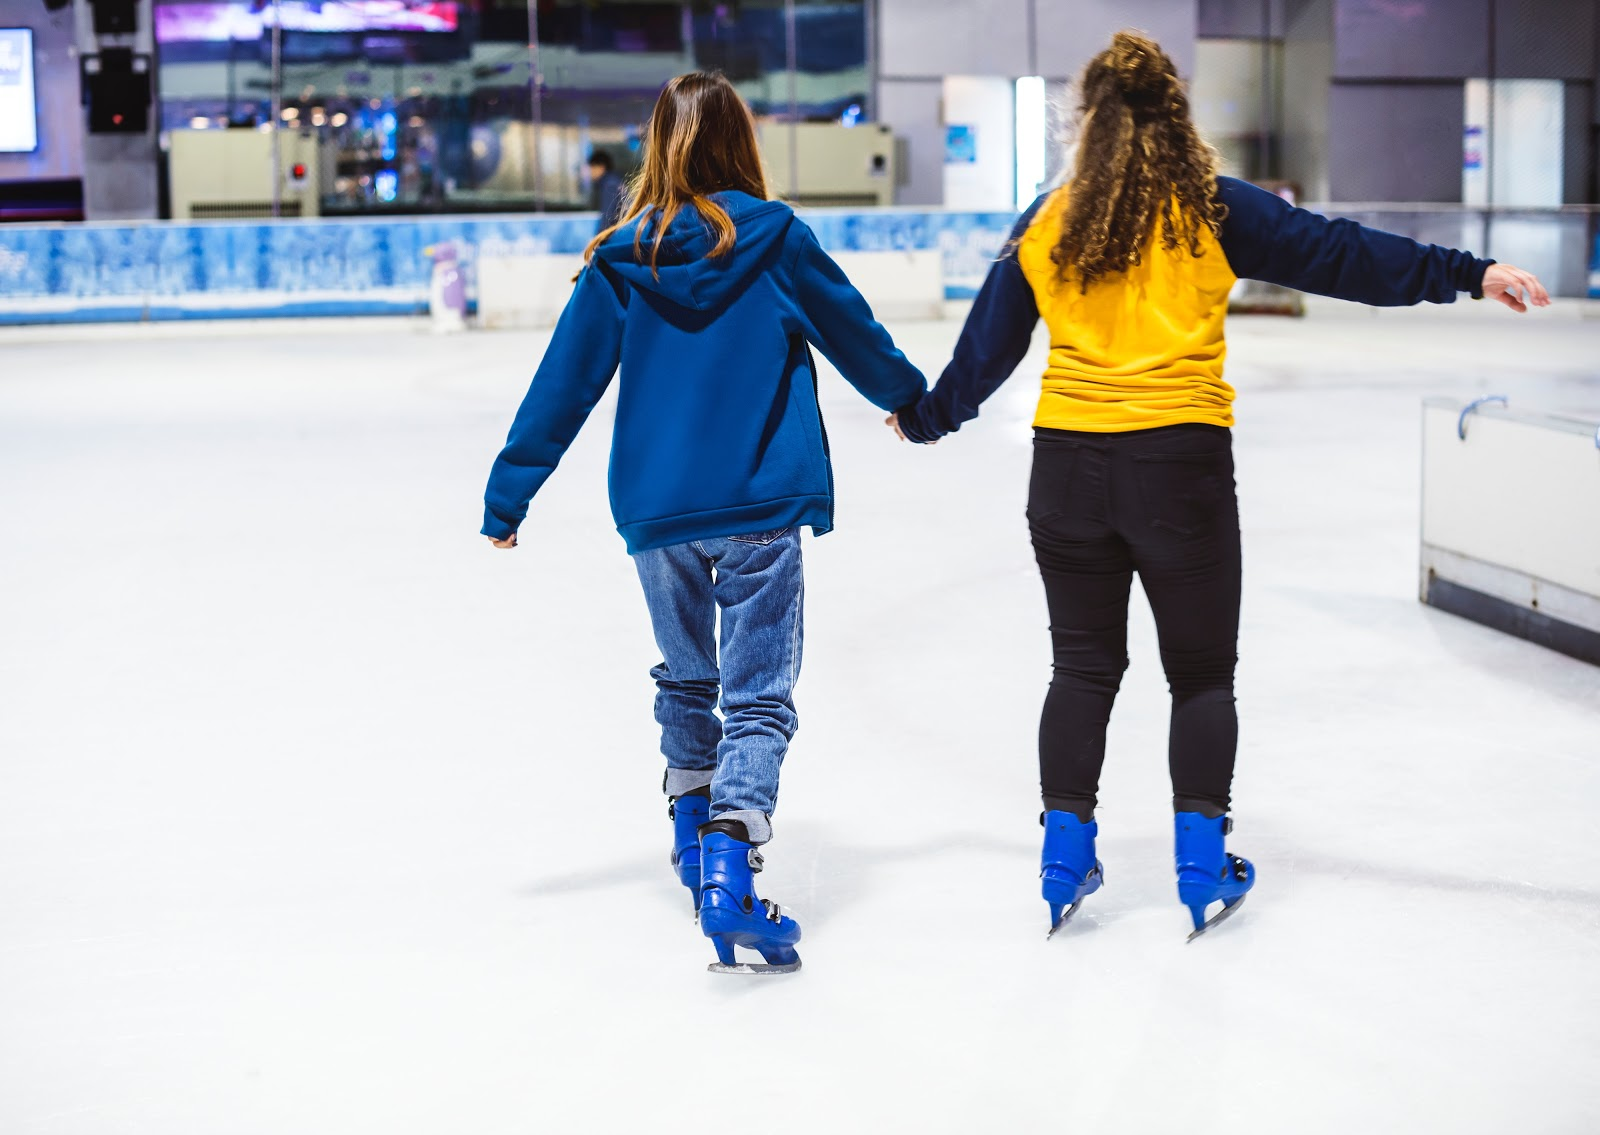 ice skaters in rink skating during open skate